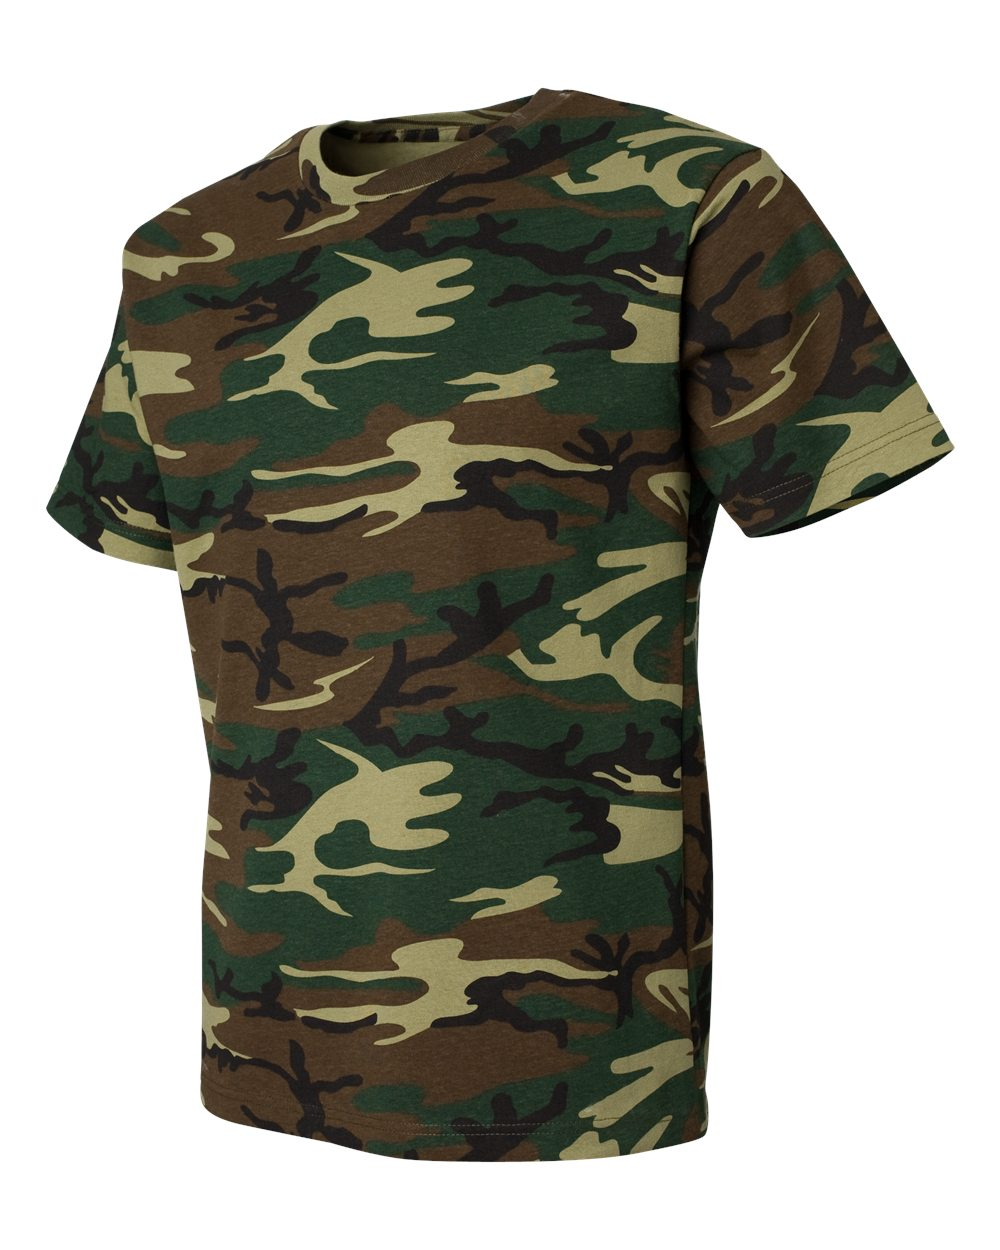 Code five 3906 adult camo tee friendly arctic printing for Camouflage t shirt printing